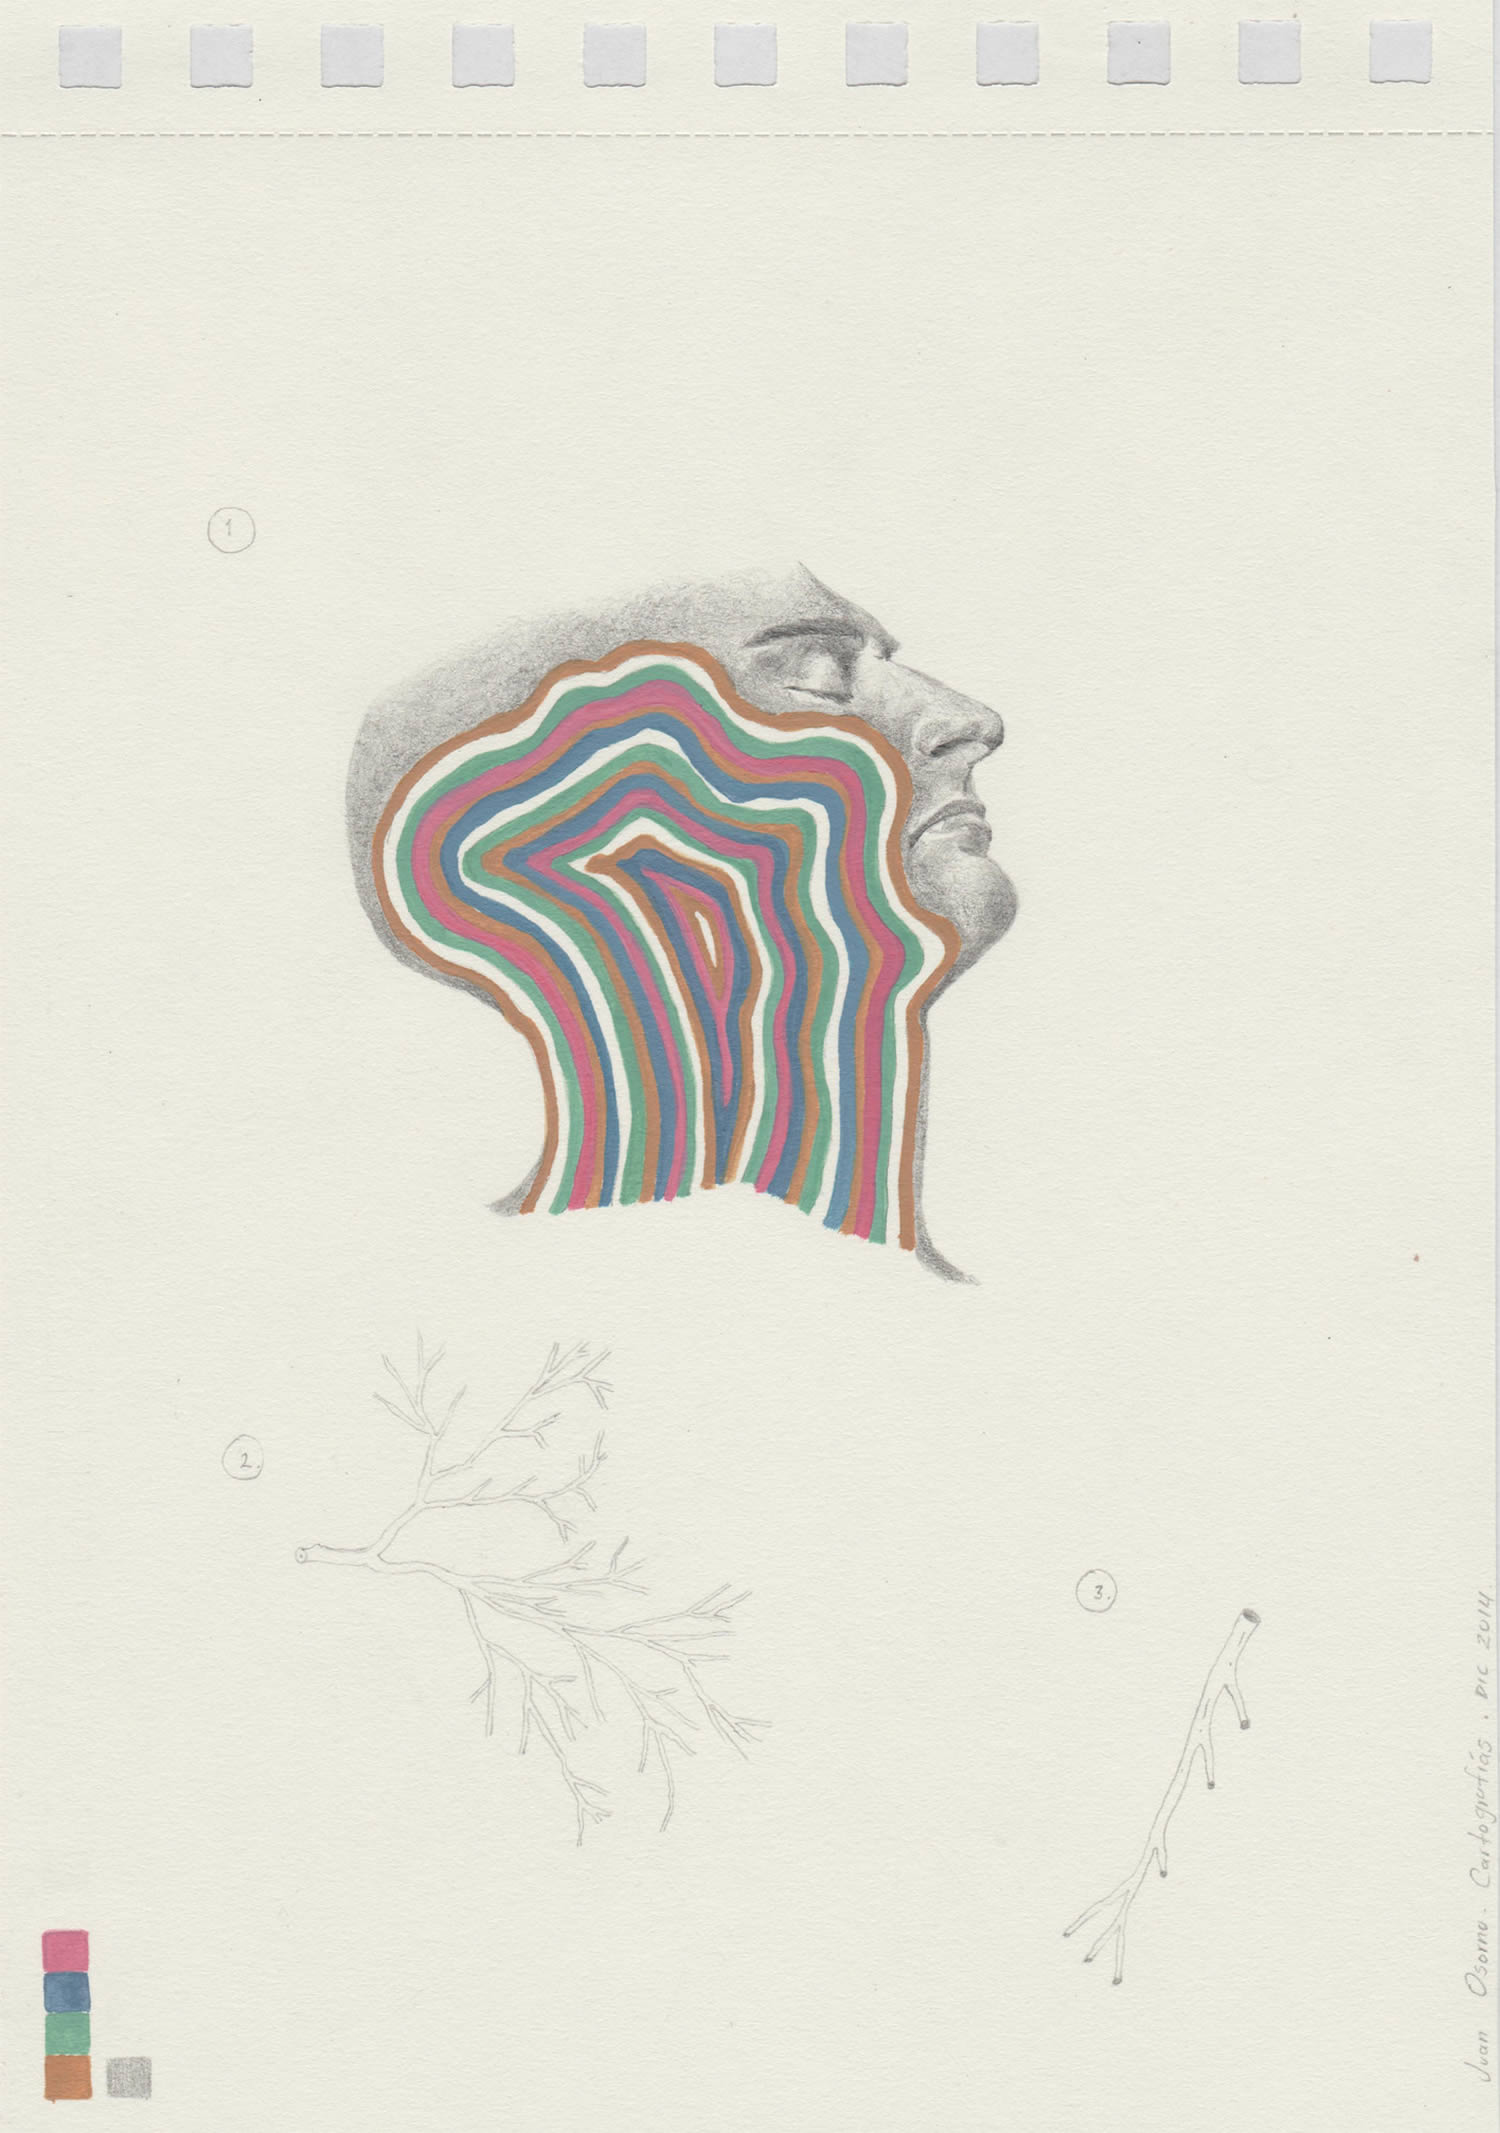 rainbow vein head, portrait